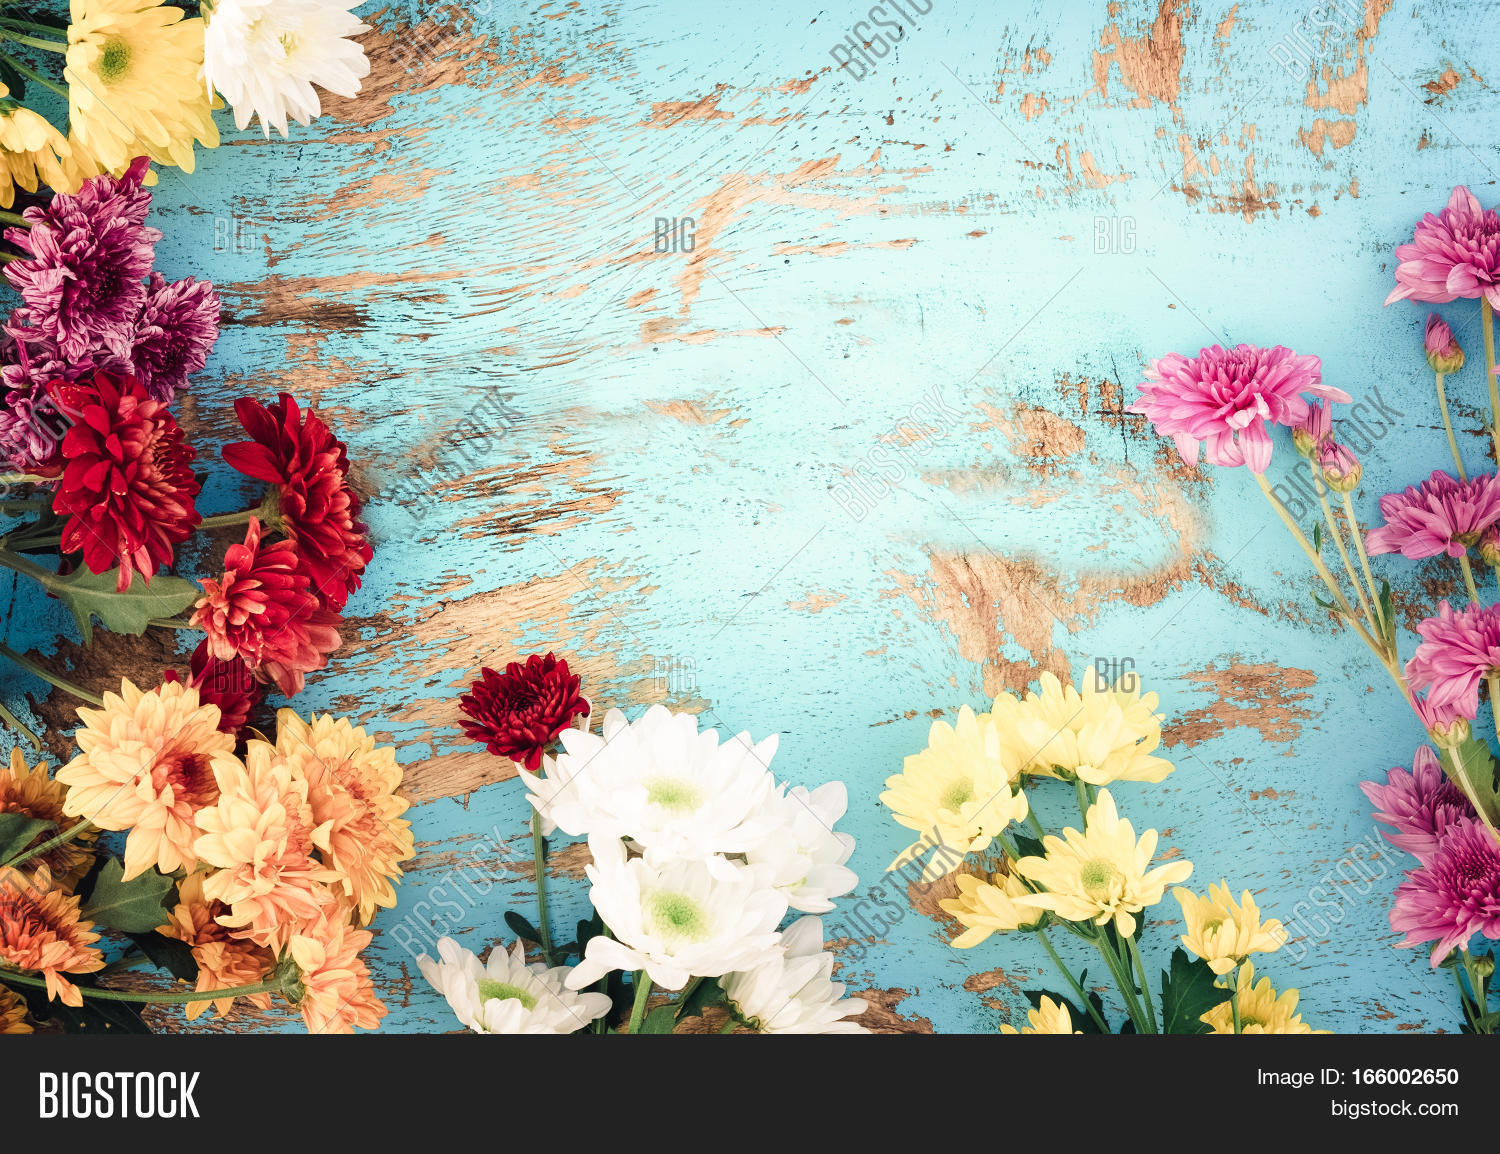 Colorful flowers image photo free trial bigstock colorful flowers bouquet on vintage wooden background border design vintage color tone concept flower izmirmasajfo